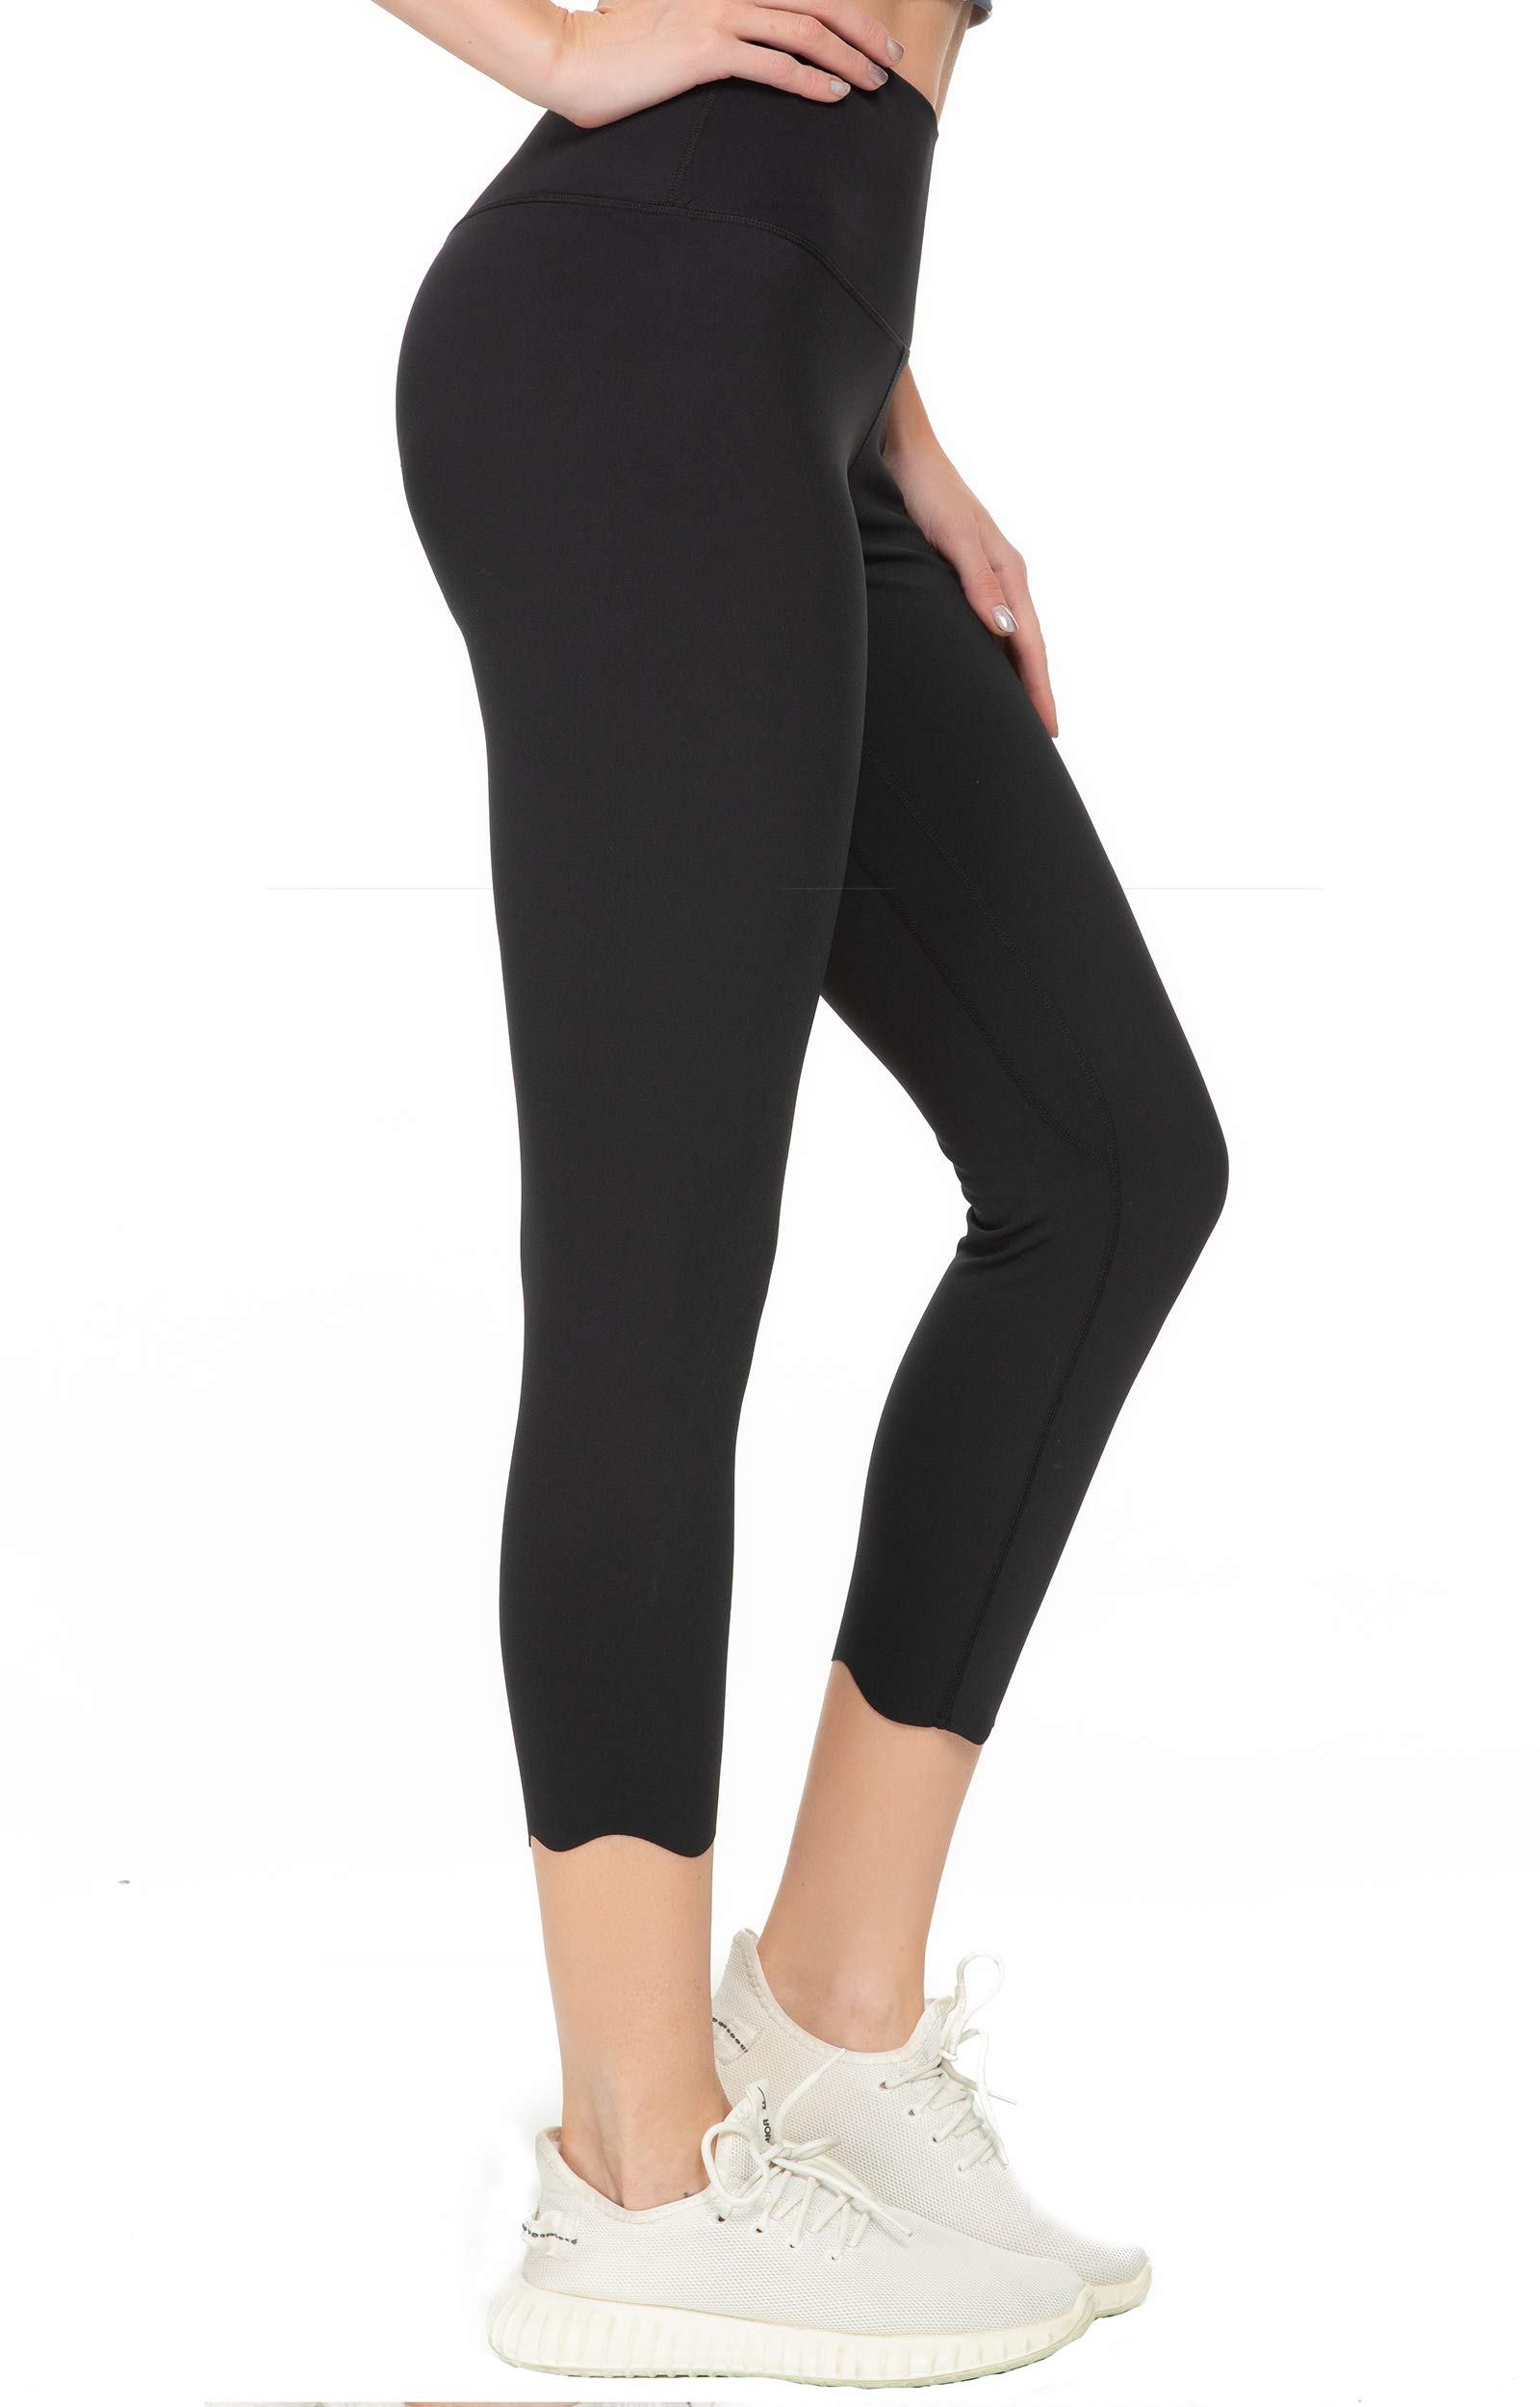 Kcutteyg Yoga Pants for Women with Pockets High Waisted Leggings Workout Sports